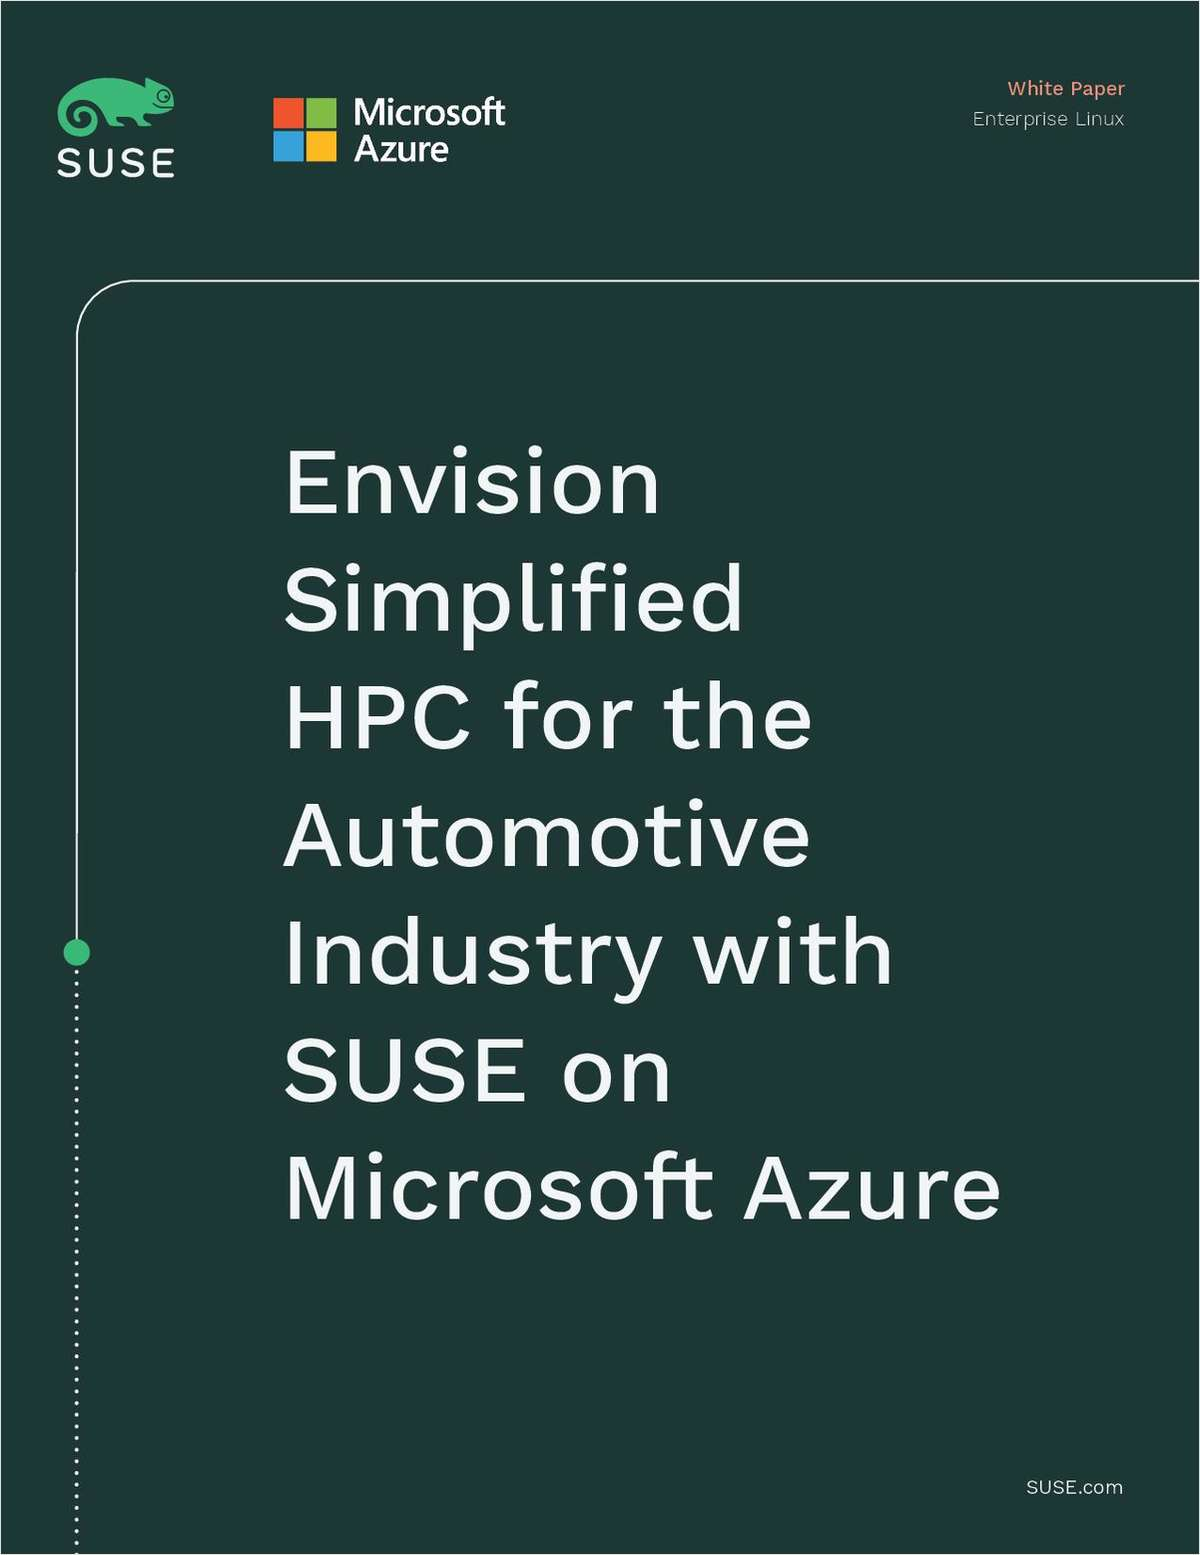 Envision Simplified HPC for the Automotive Industry with SUSE on Microsoft Azure